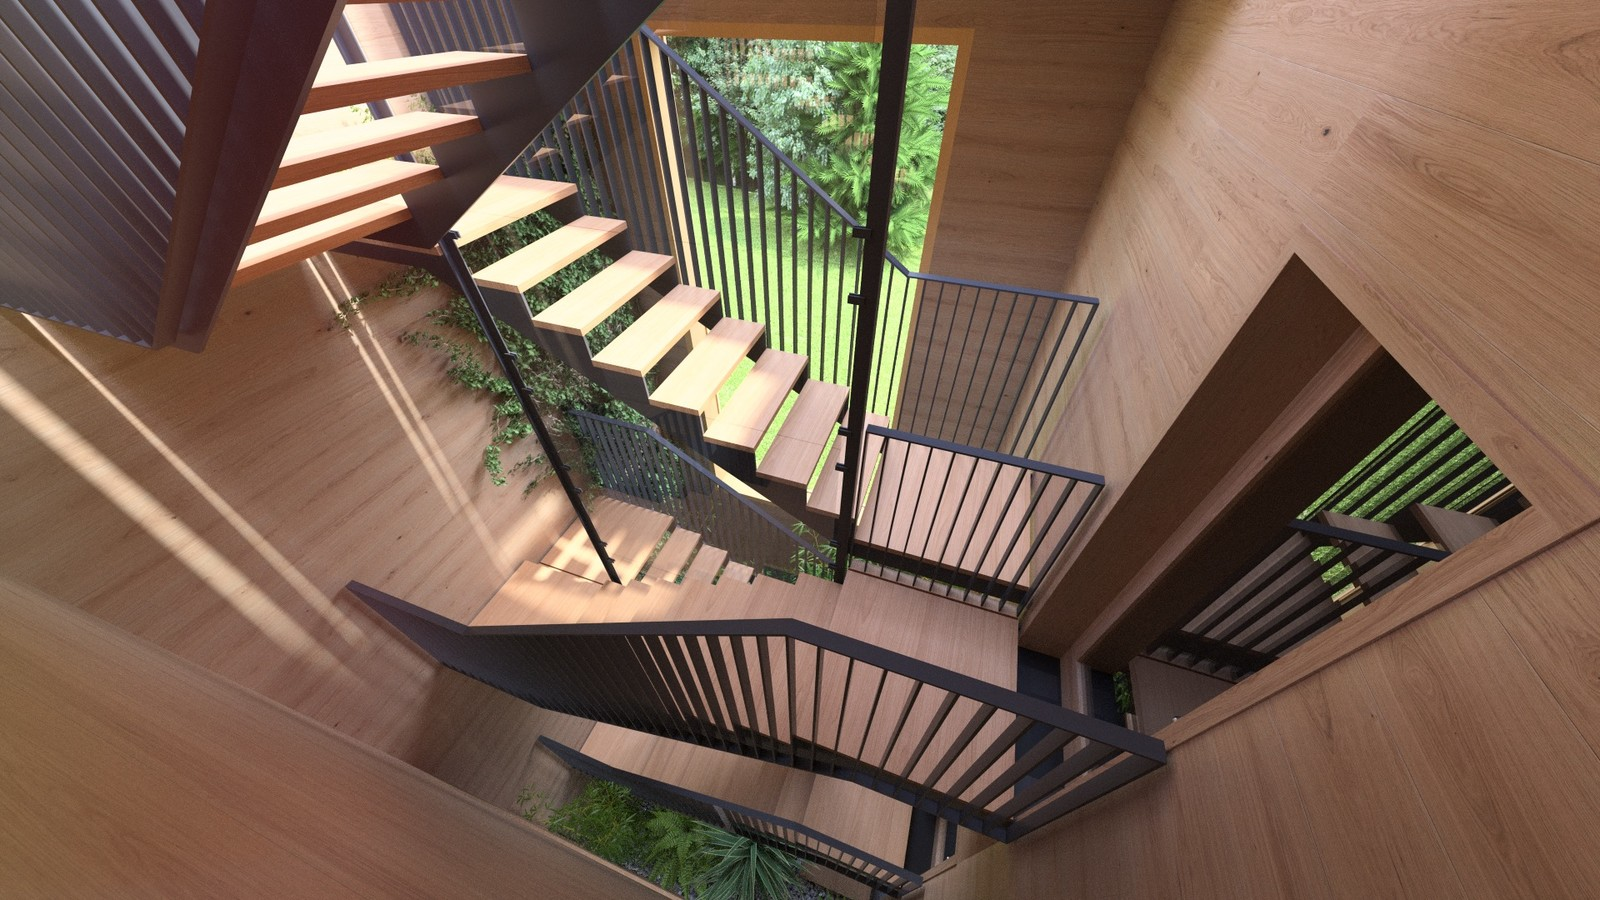 28A A1309-Villas Portier 3d STAIRCASE-GARAGE-Staircase 2nd floor 01G Post  KP webpage of project: http://www.kemppro.com/KP_3D_communication_3_Villas_Veyrier.html